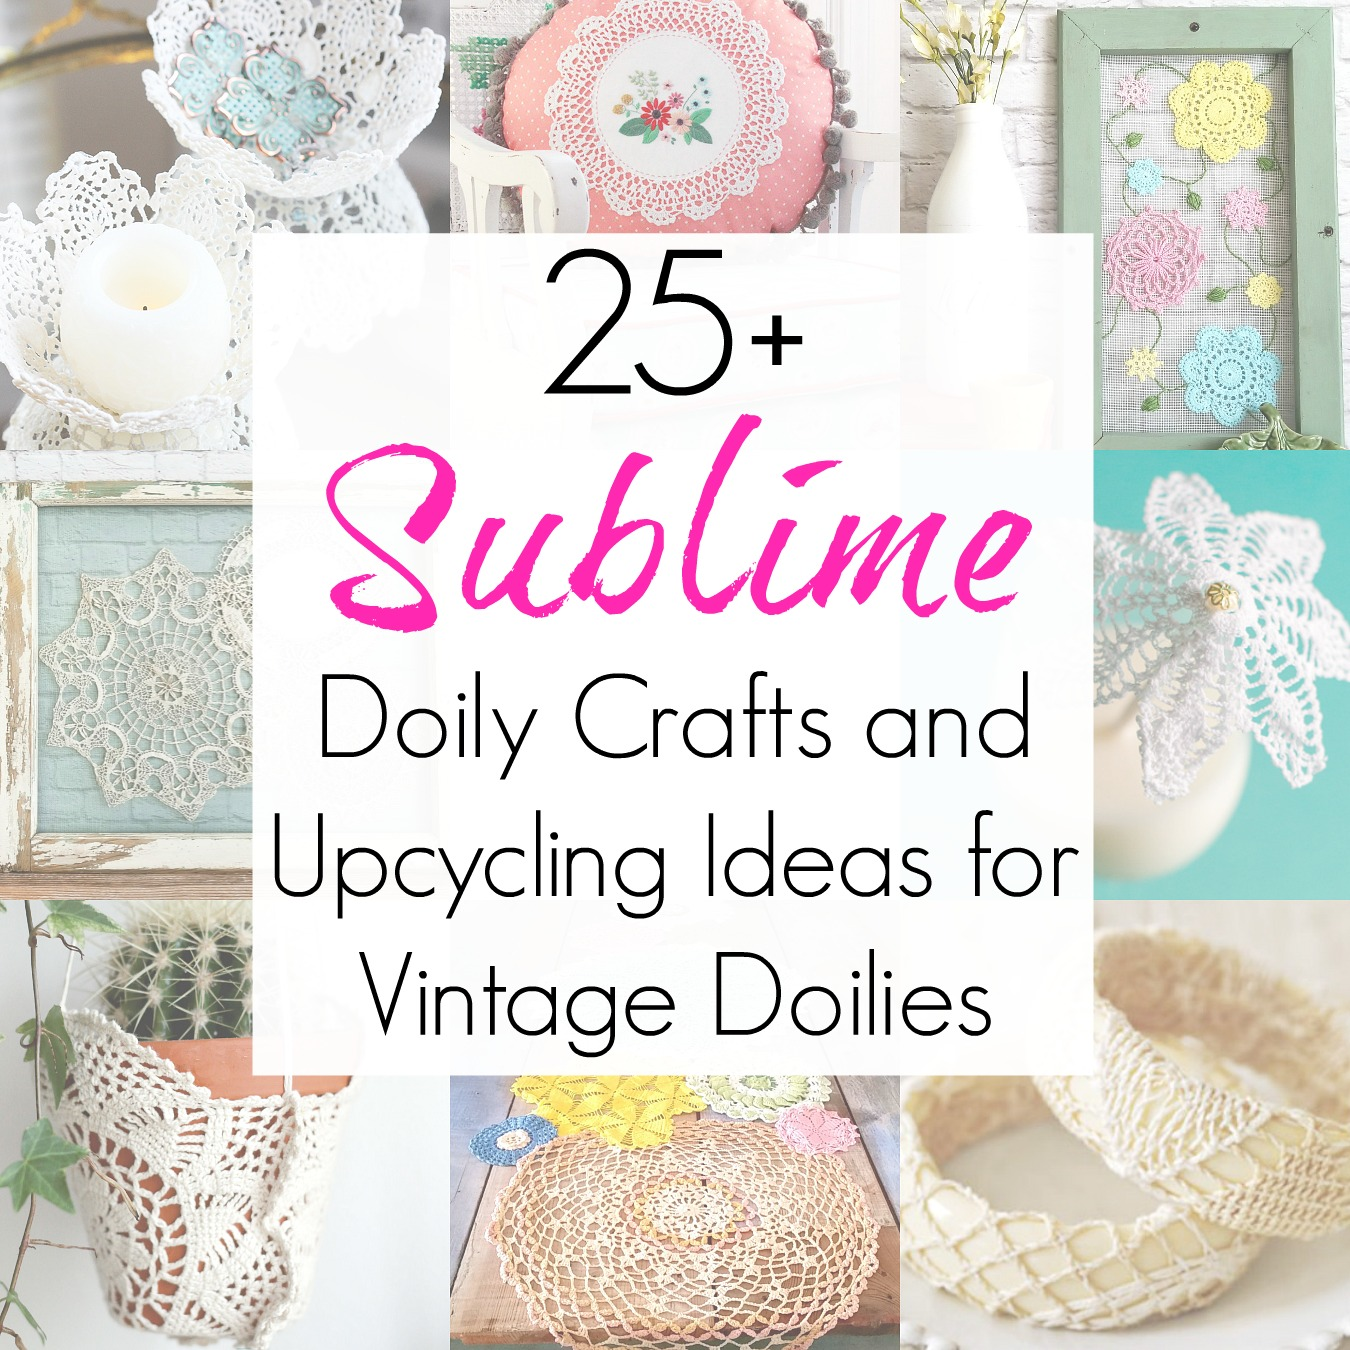 Doily Crafts and Upcycling Ideas for Vintage Doilies as Granny Chic decor for grandmillenials